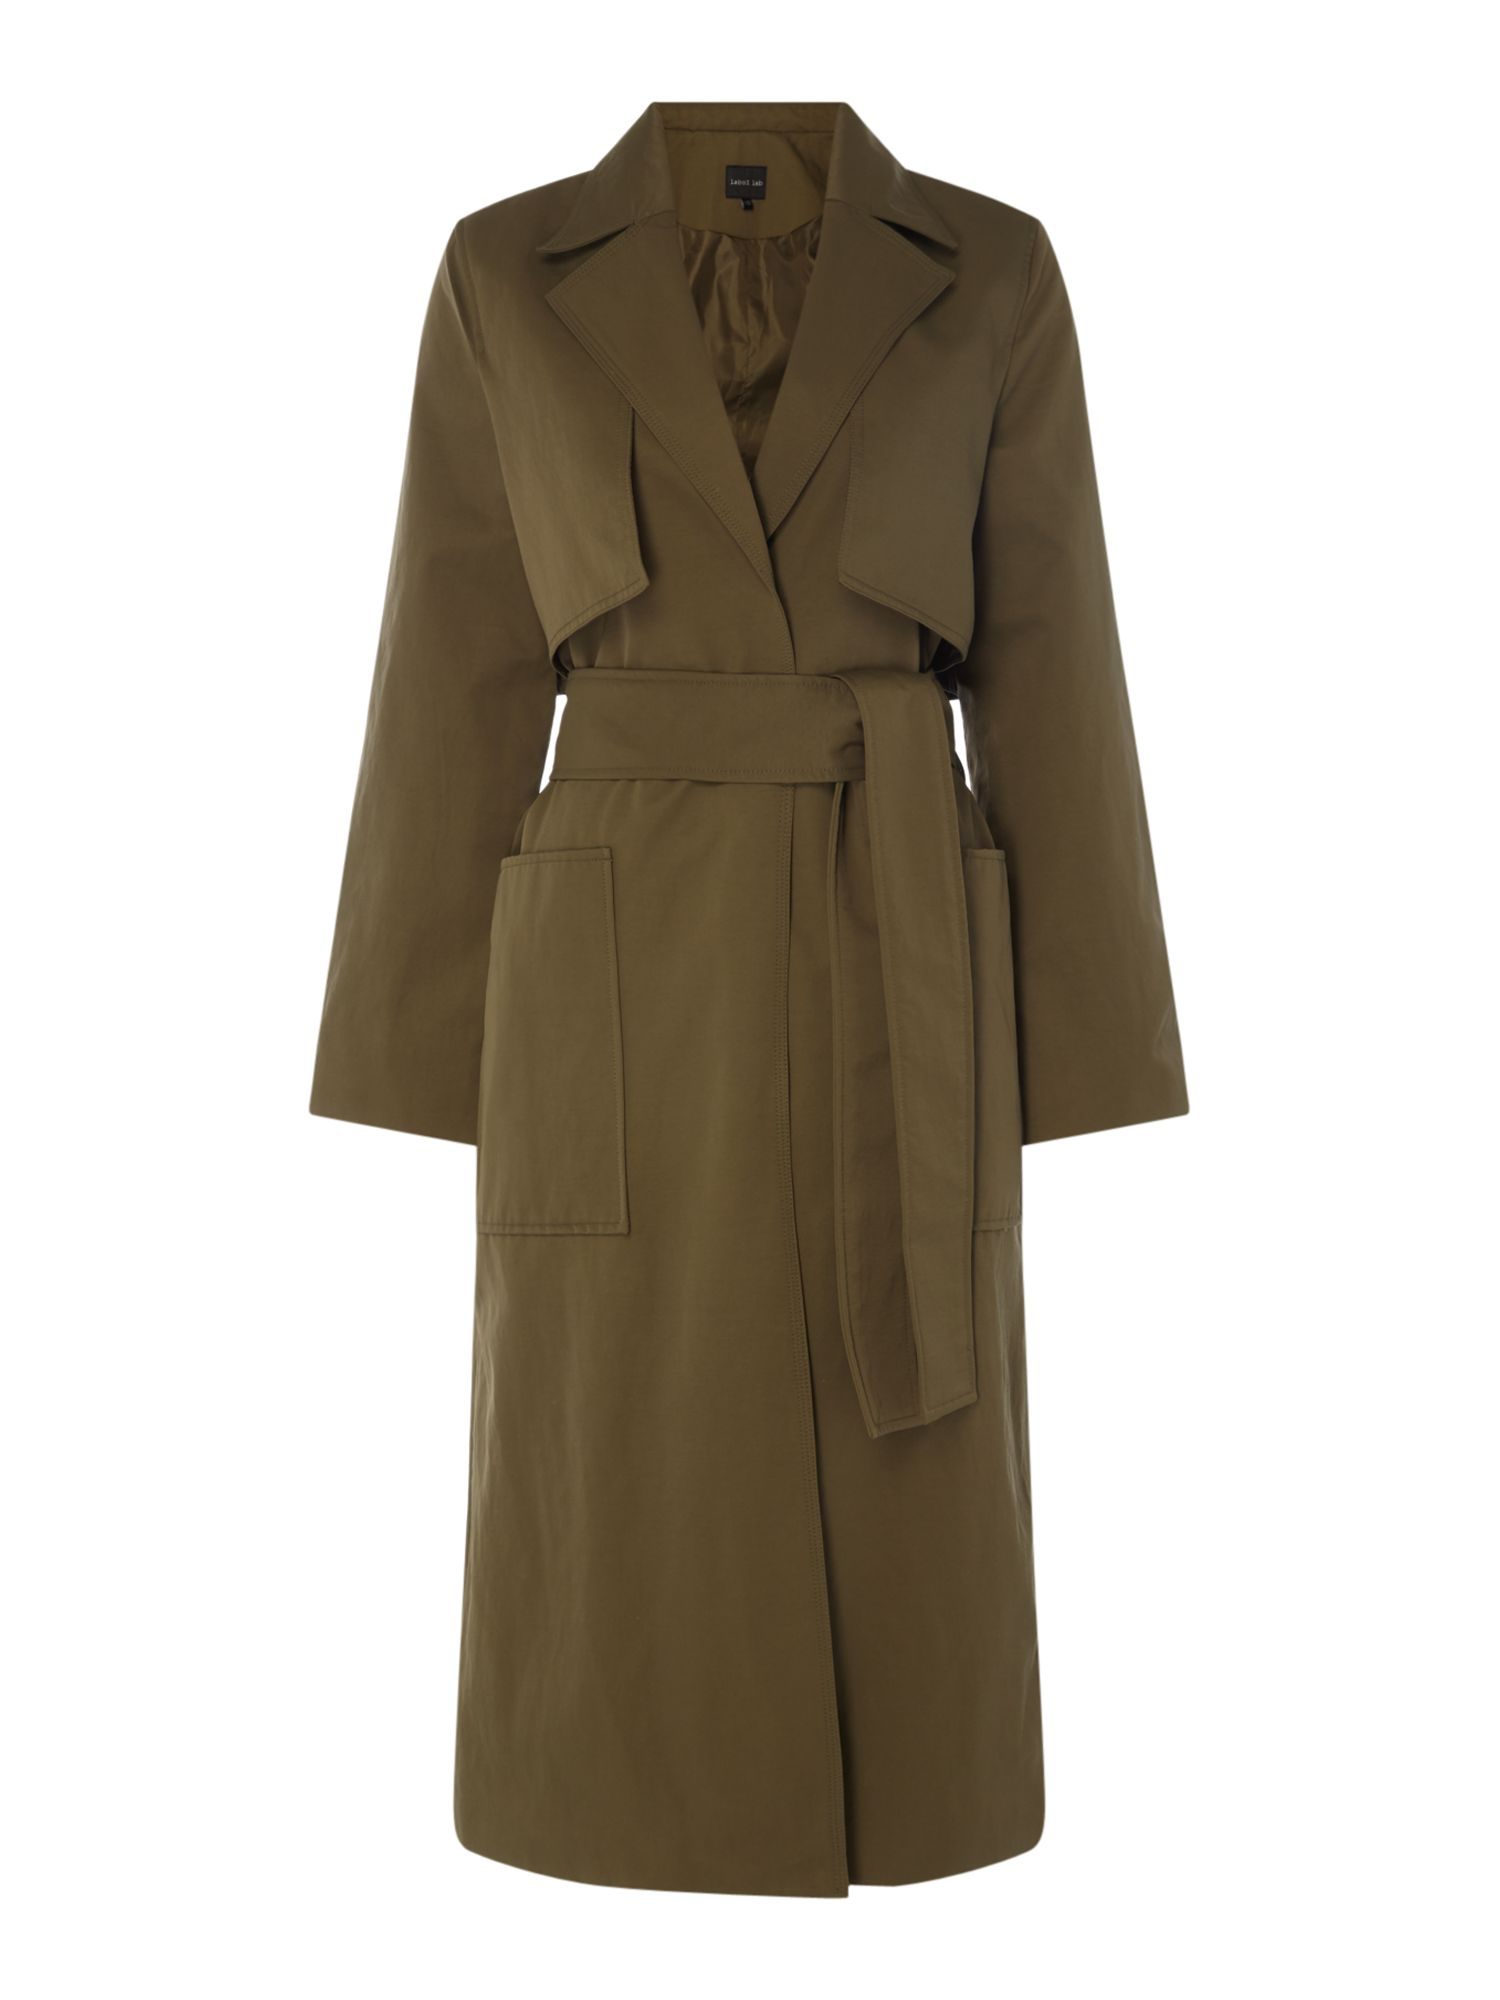 Label Lab Brooke Belted Trench Coat, Khaki